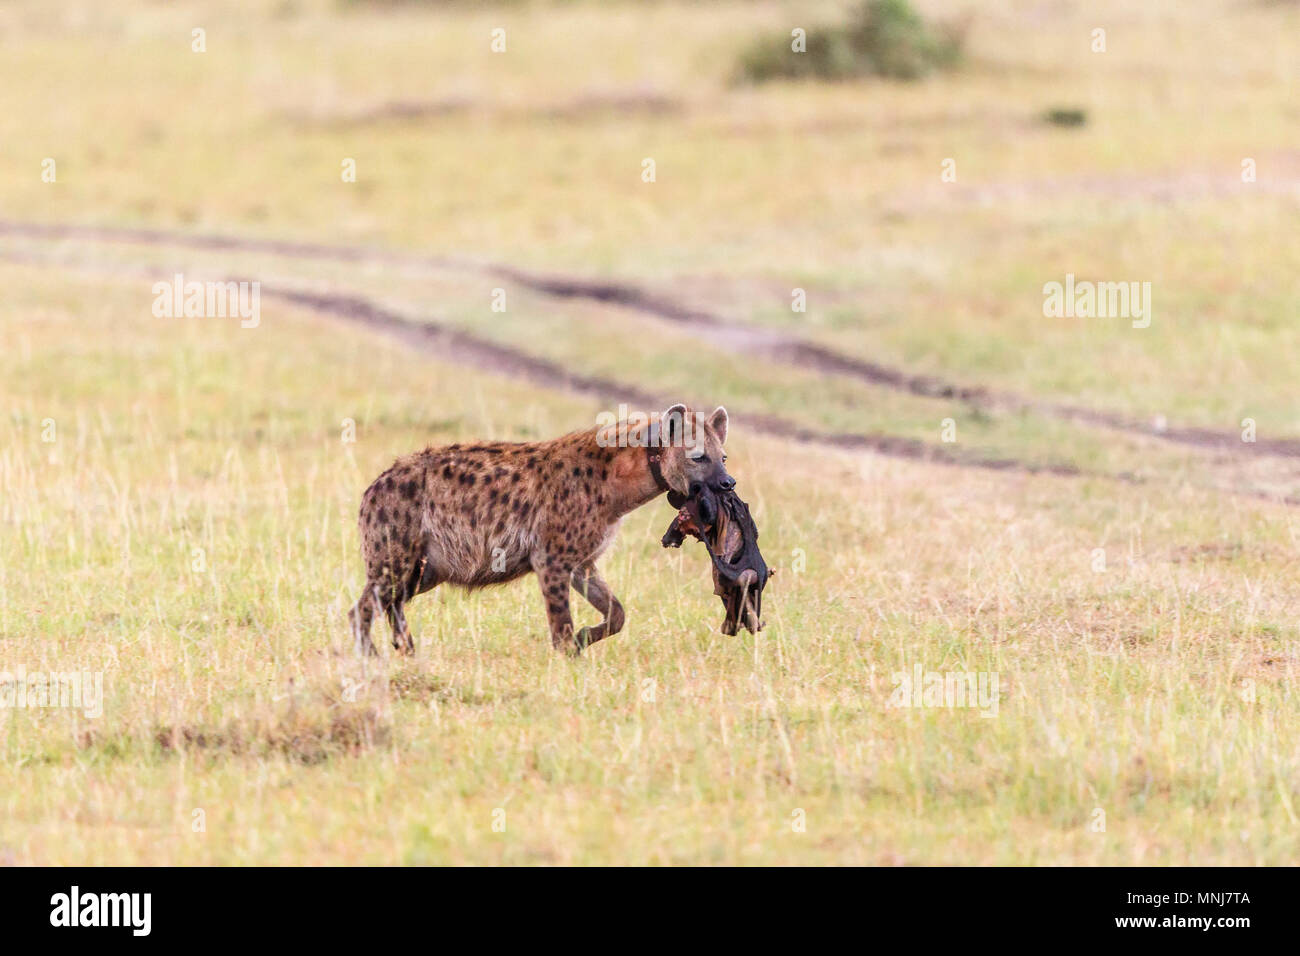 Hyena with tracking collar carrying an animal prey - Stock Image